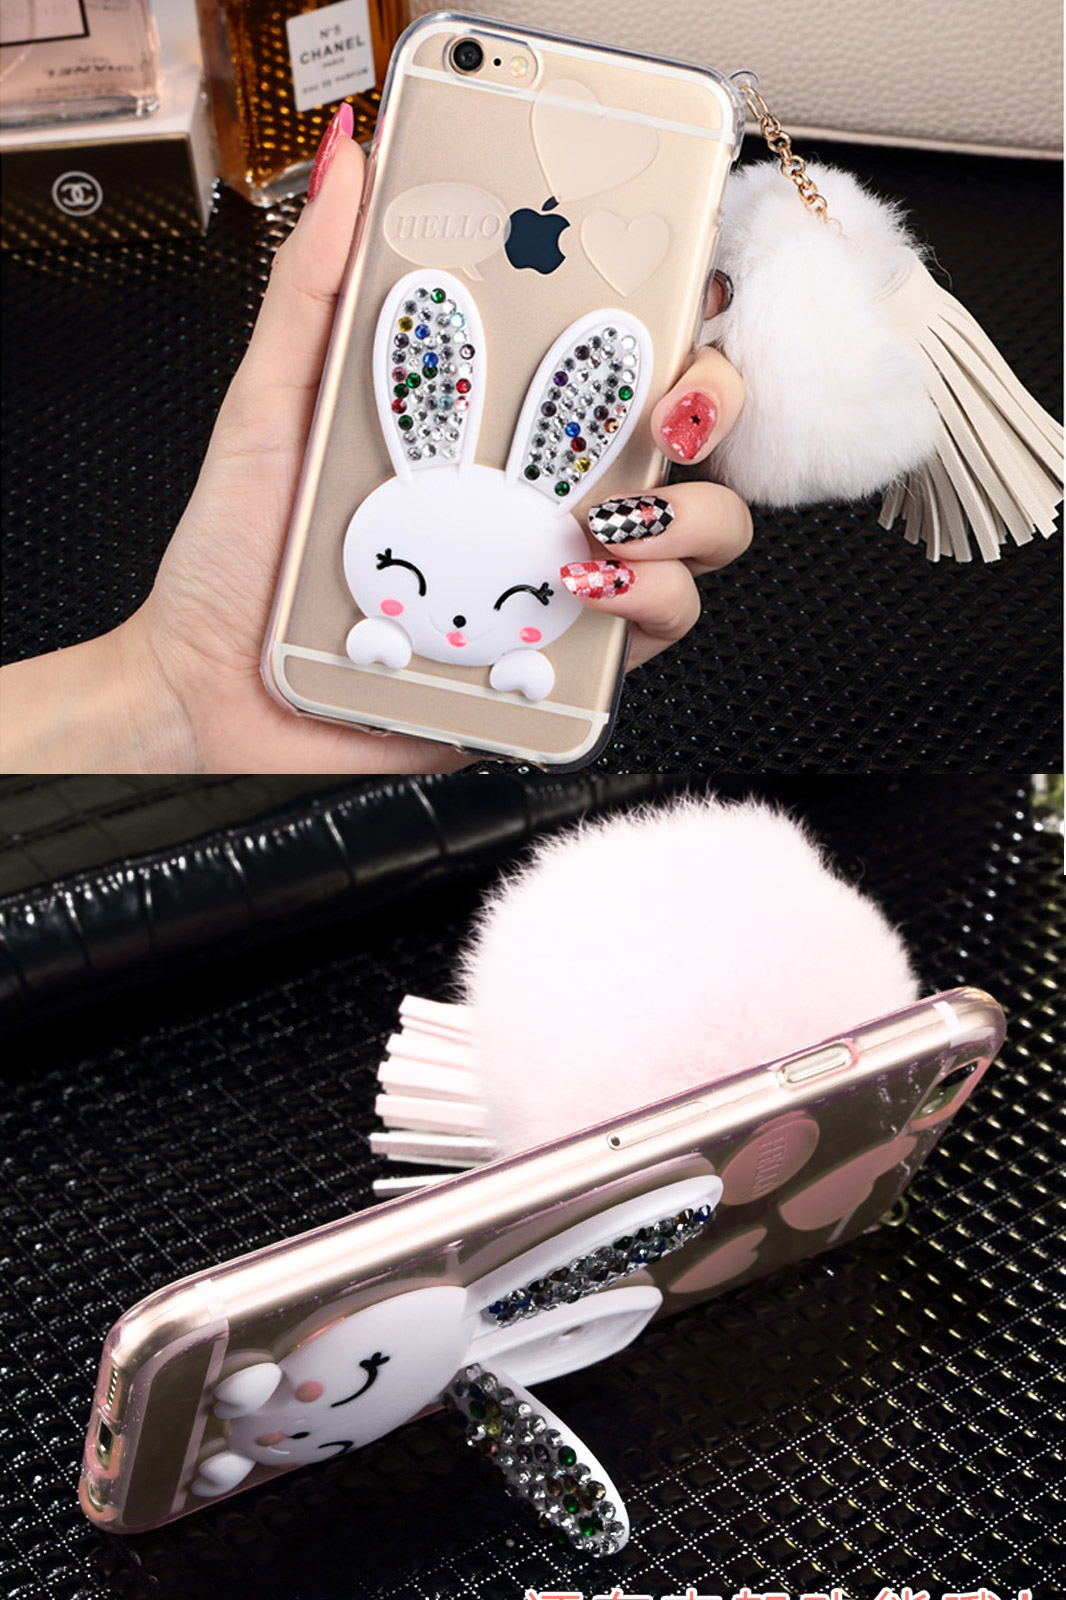 Tpu case for apple iphone 6 and 6s plus  luxury diamond cute rabbit silicone case